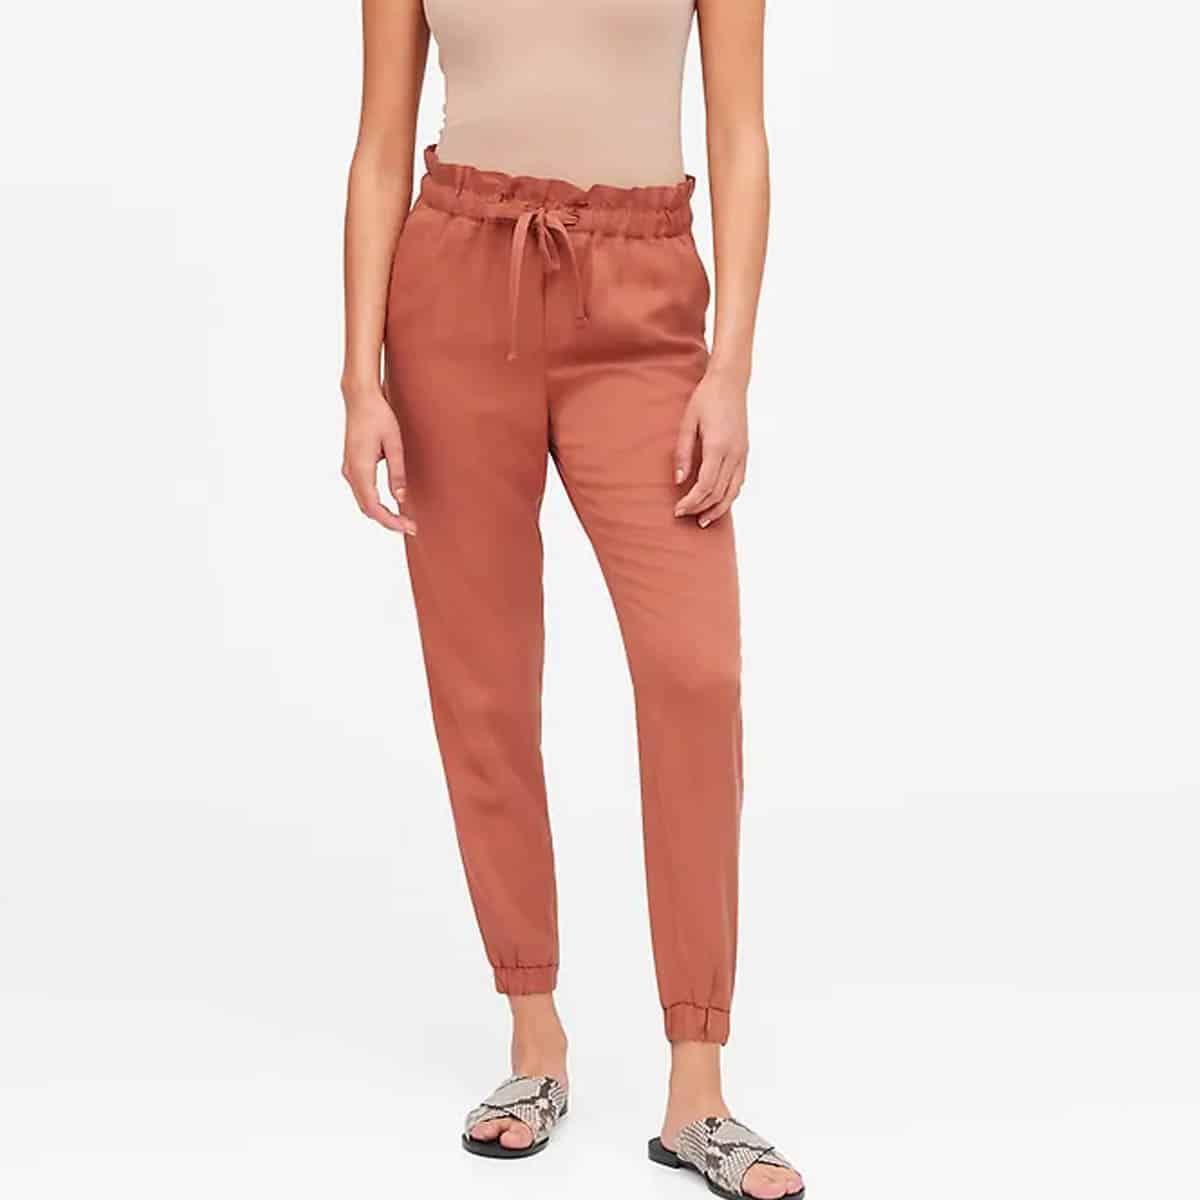 10 Stylish and Comfy Summer Clothes I'm Adding to My Wardrobe Right Now 8